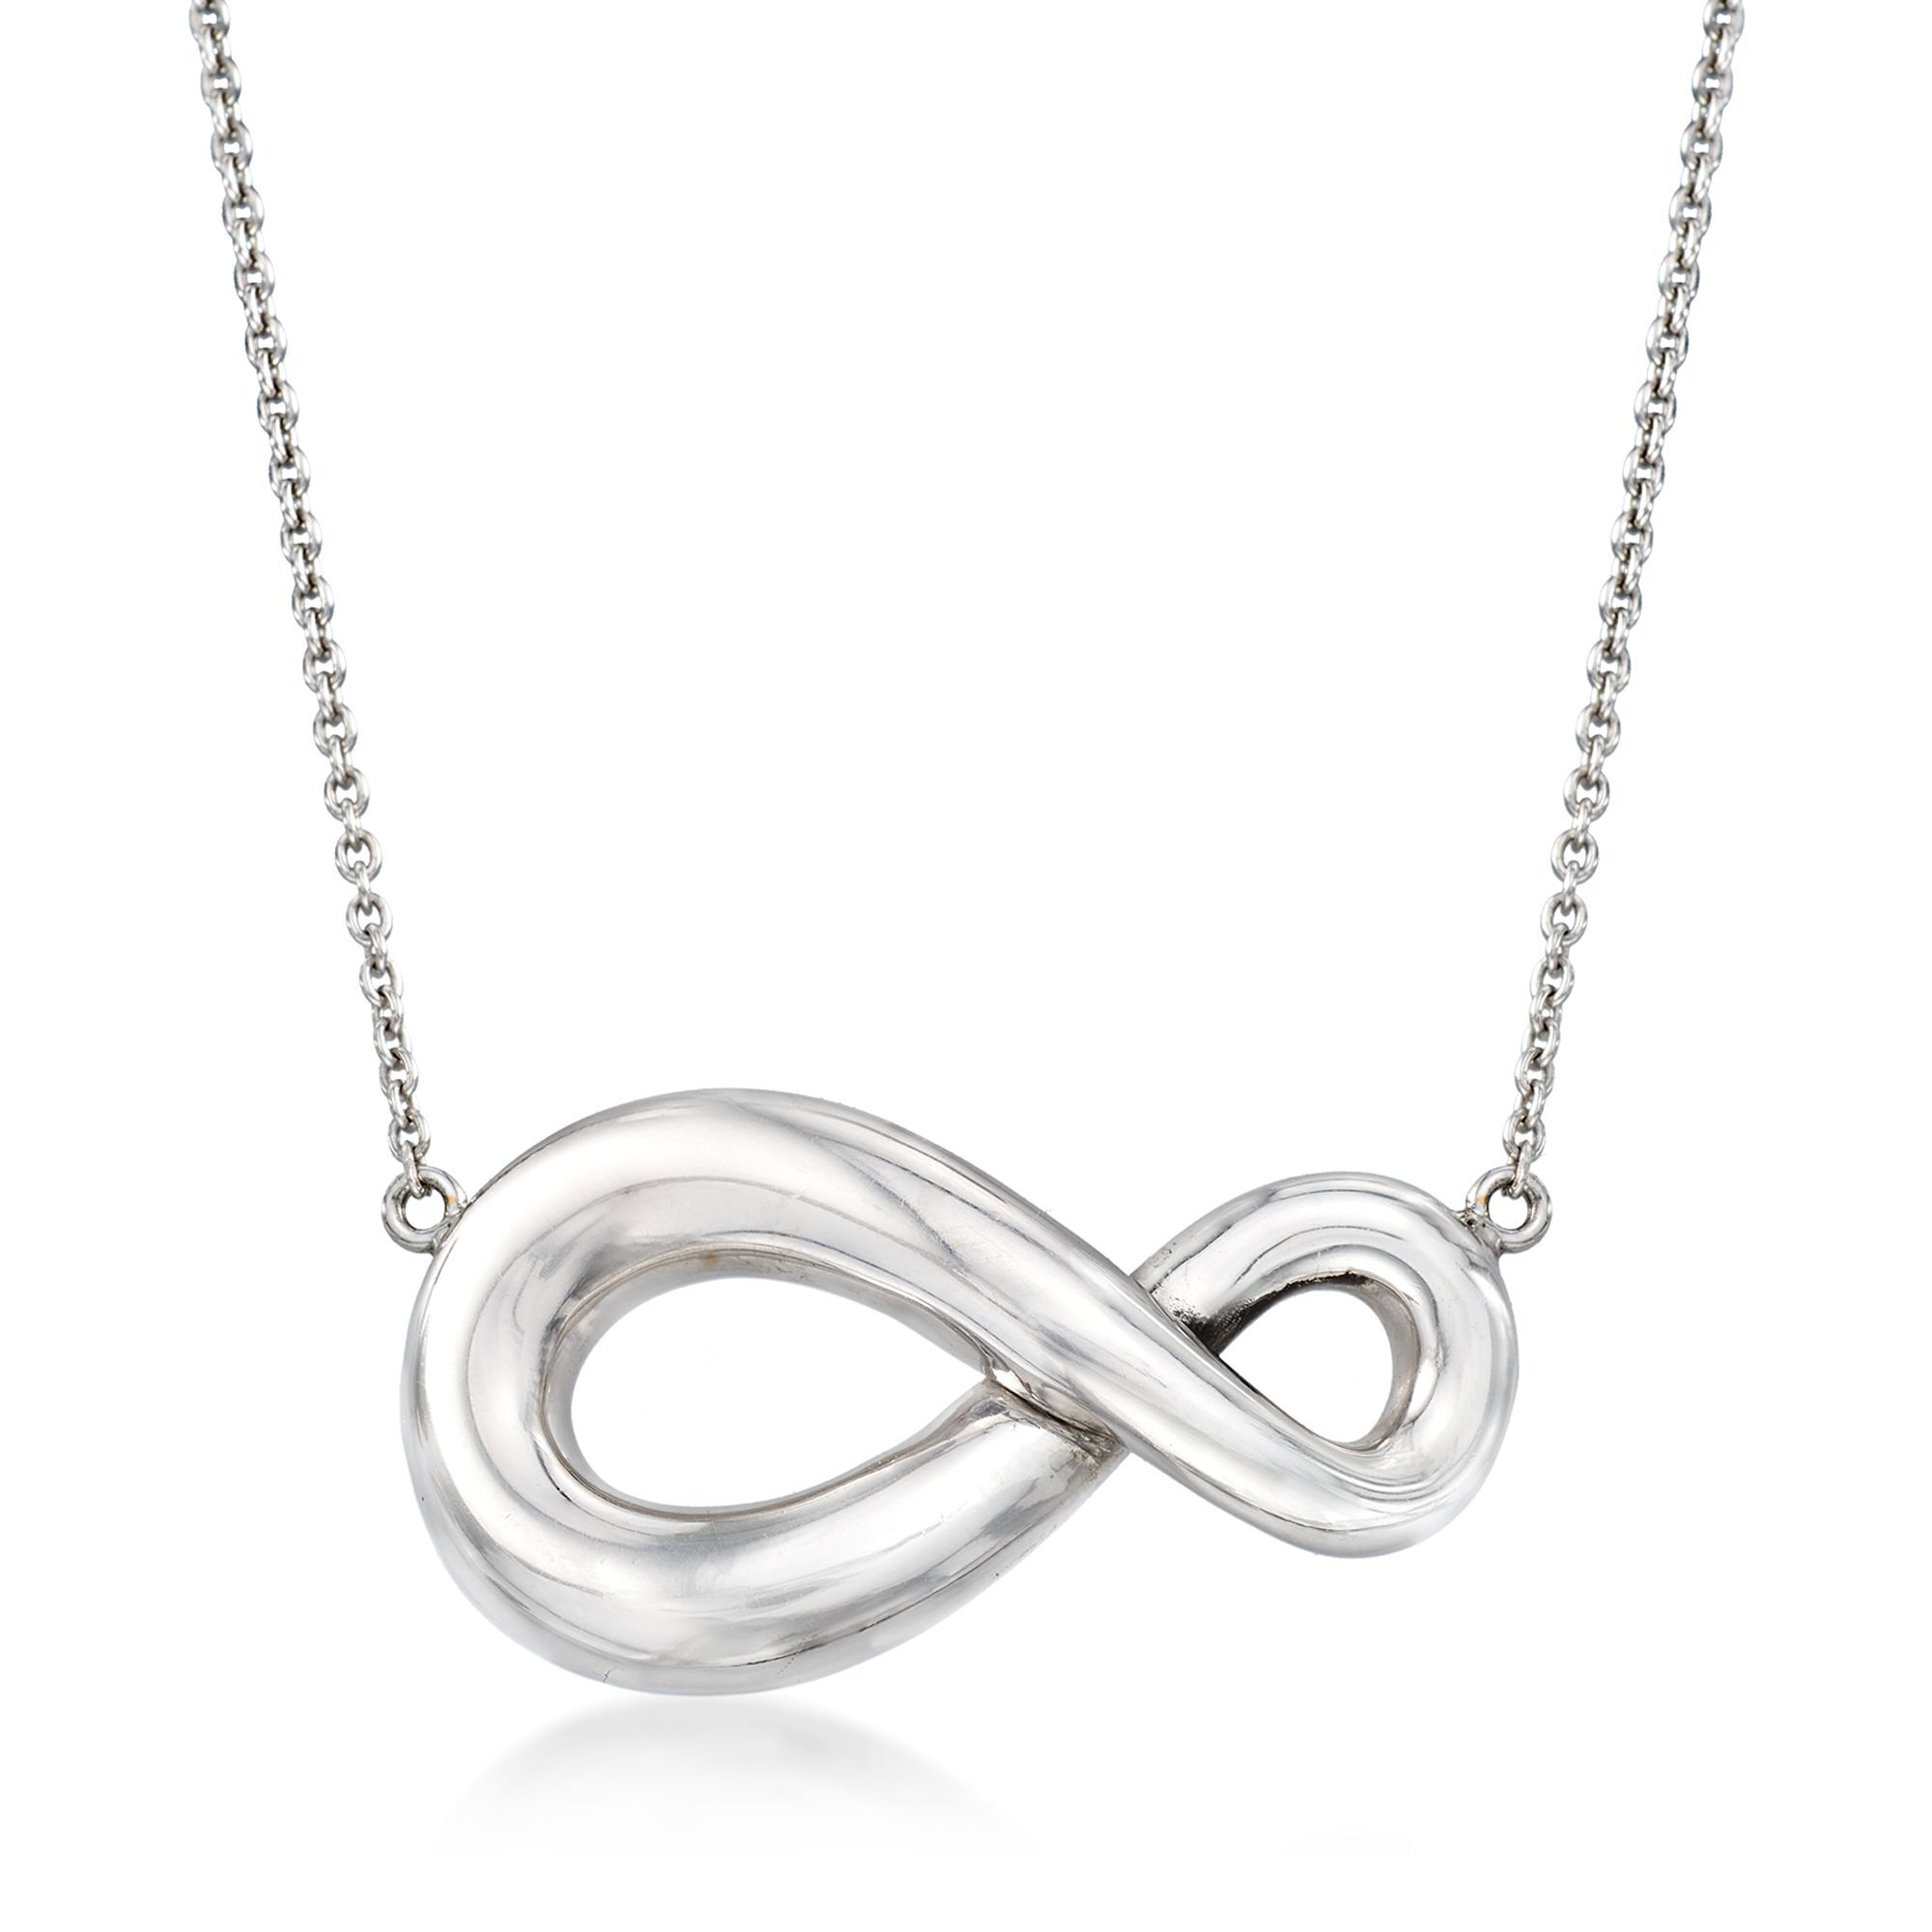 bridesmaid il infinity bridesmaids sterling necklace dainty fullxfull brides listing silver